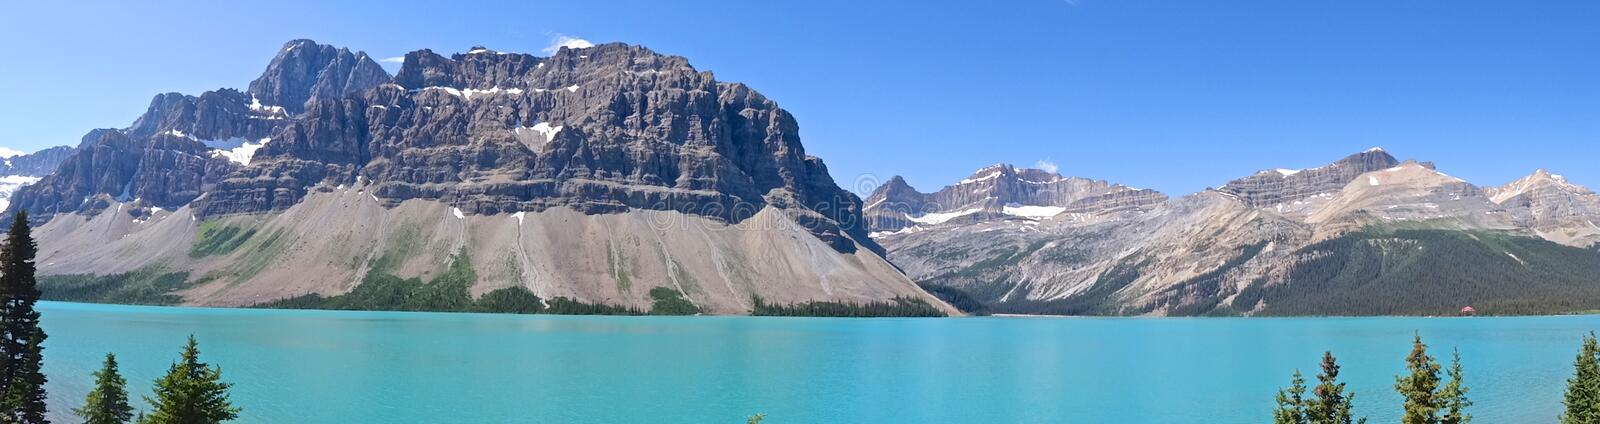 Bow Lake, Icefields parkway, Canada. stock photography